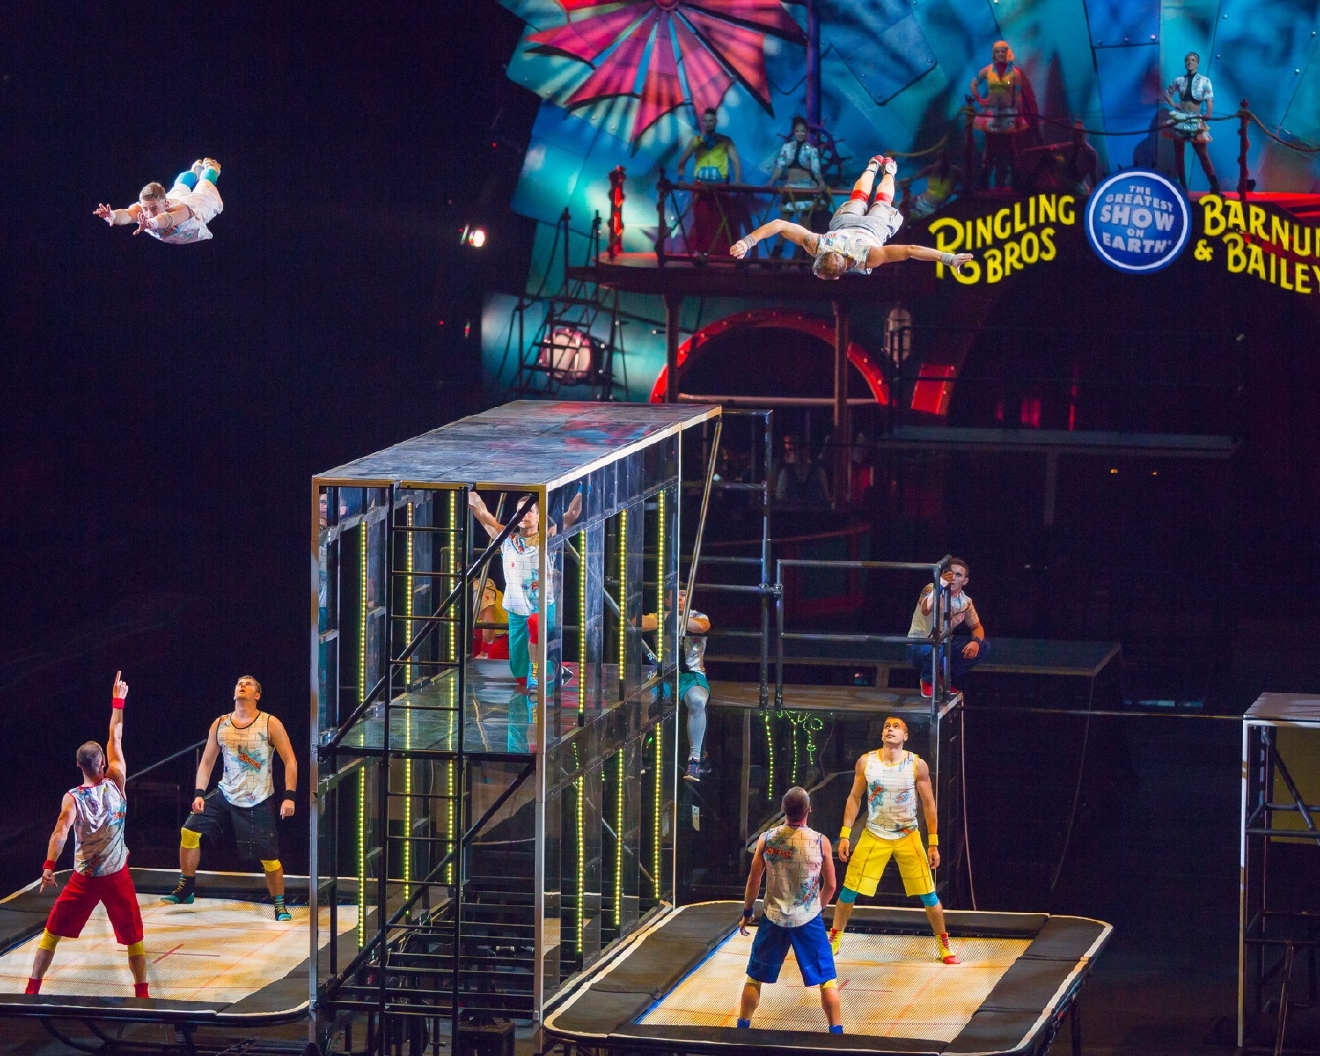 Catch The Ringling Bros. Barnum and Bailey Circus March 10-18 at U.S. Bank Arena. / Image courtesy of  the Ringling Bros. Barnum and Bailey Circus